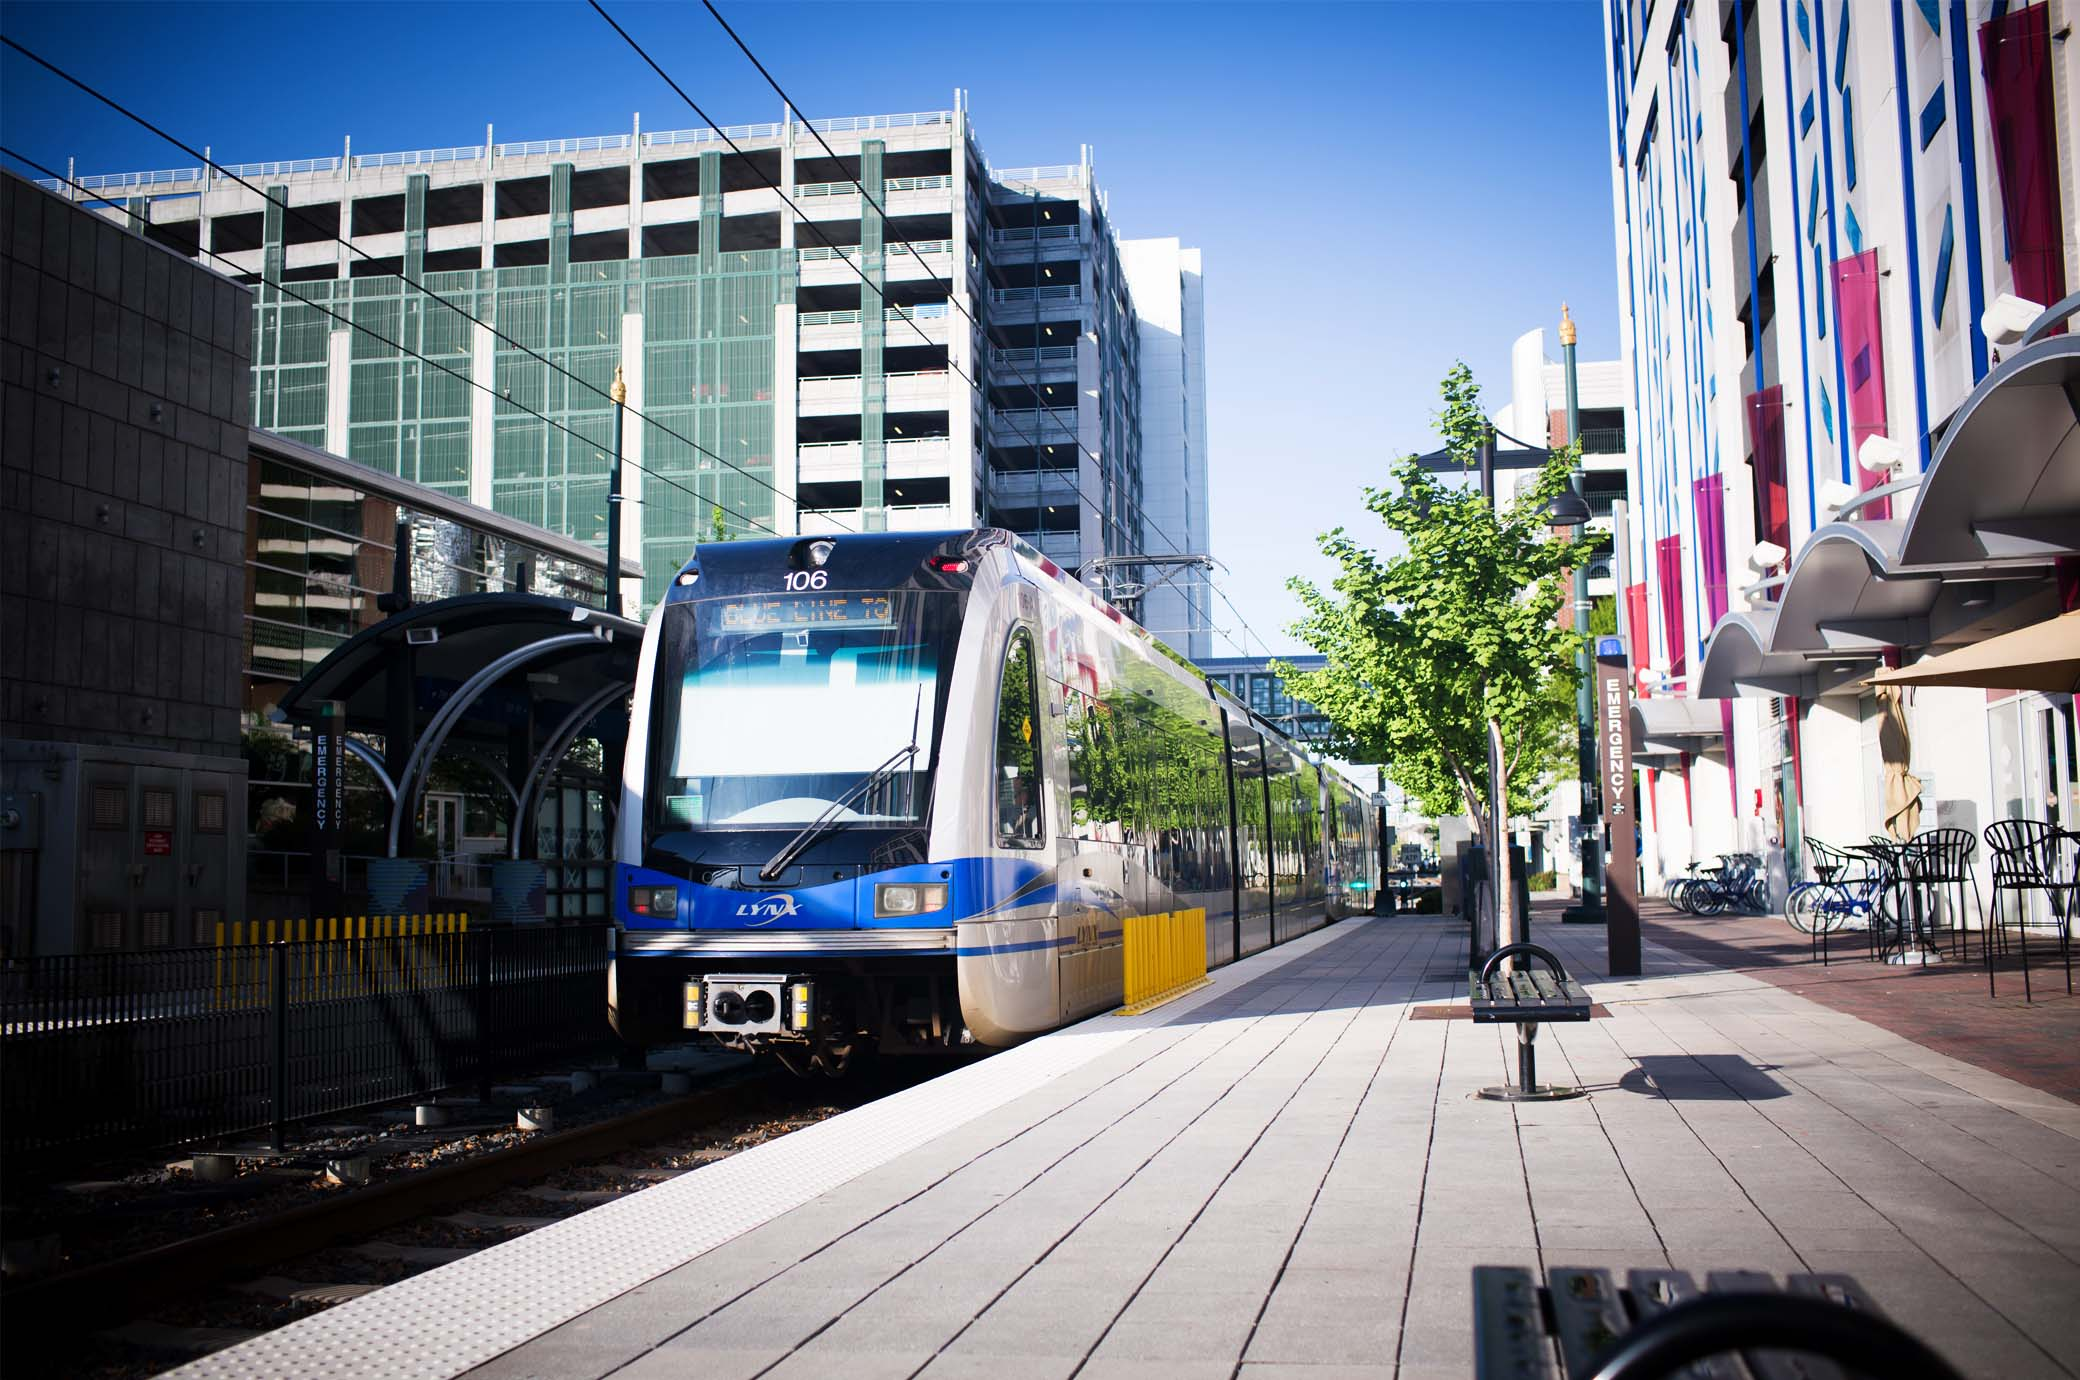 img2-explore-what-to-do-in-charlotte-lynx-lightrail.jpg